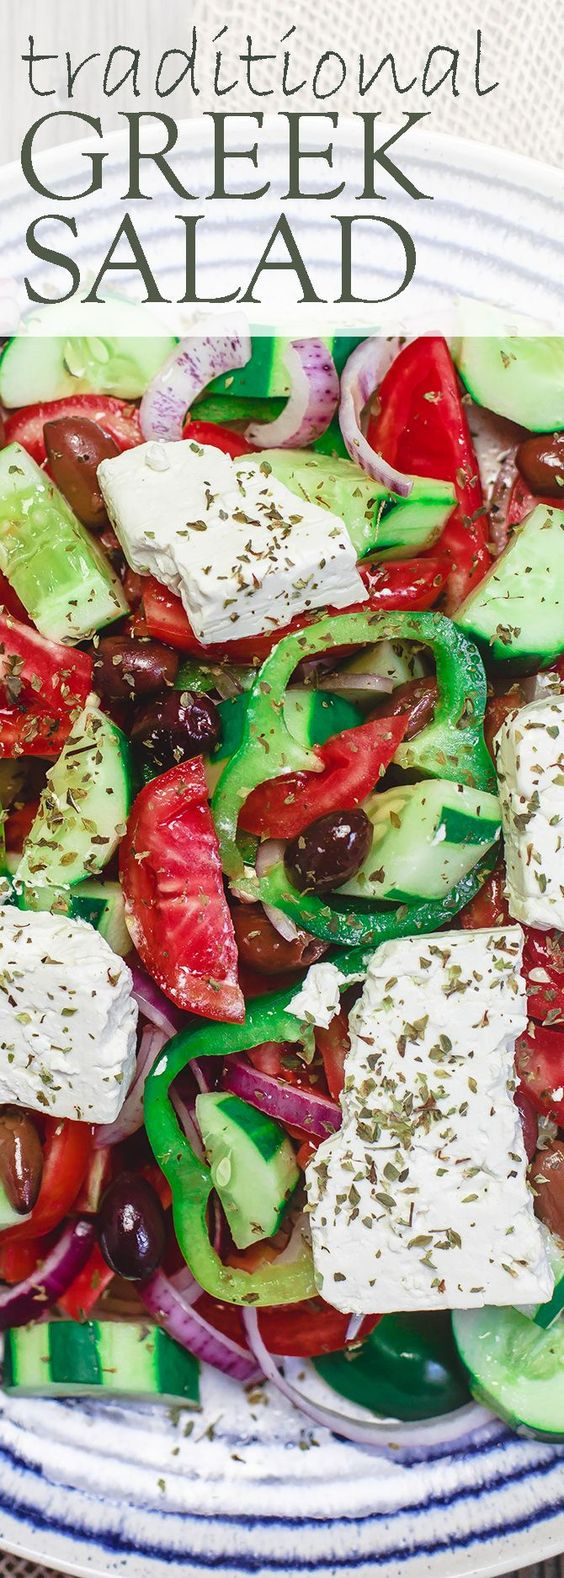 Traditional Greek Salad Recipe   The Mediterranean Dish. Simple, authentic Greek salad with juicy tomatoes, cucumbers, green peppers, creamy feta cheese and olives. Seasoned with oregano and dressed in extra virgin olive oil. A must try from TheMediterraneanD...